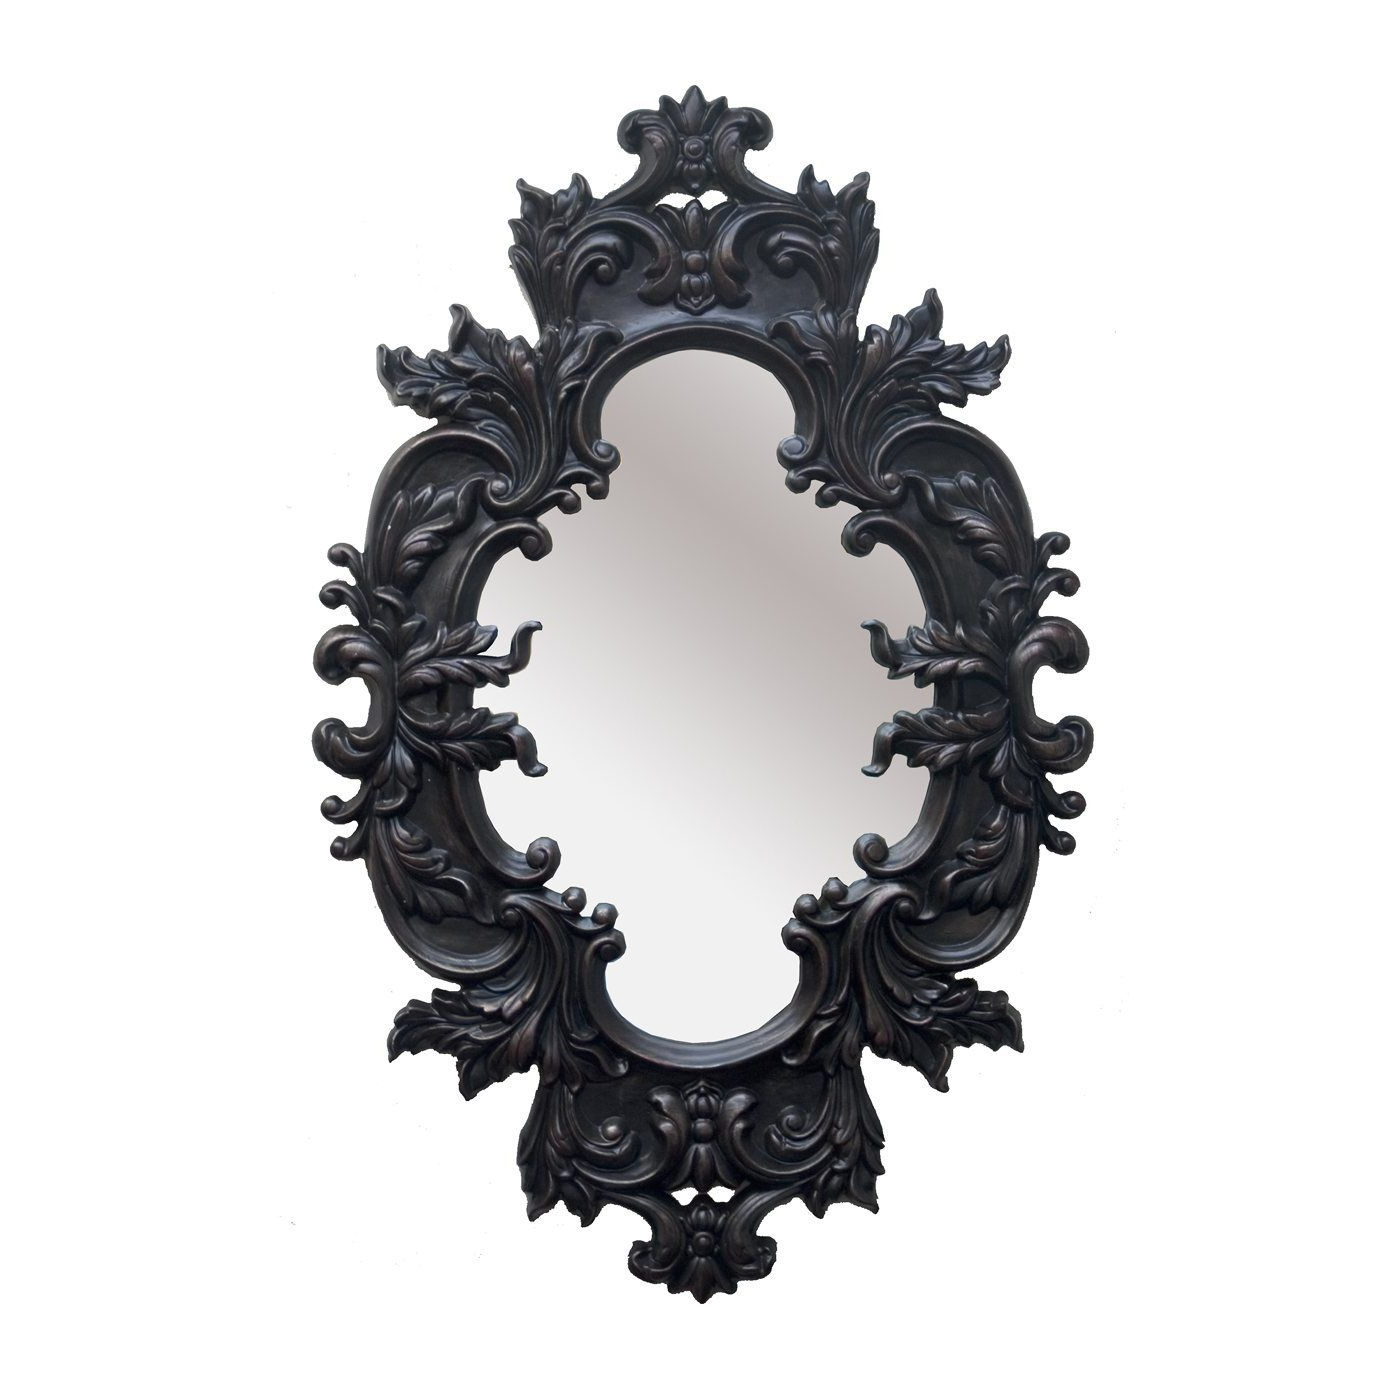 2020 Prodigious Useful Tips: Decorative Wall Mirror Rustic Black Wall For Decorative Black Wall Mirrors (View 3 of 20)